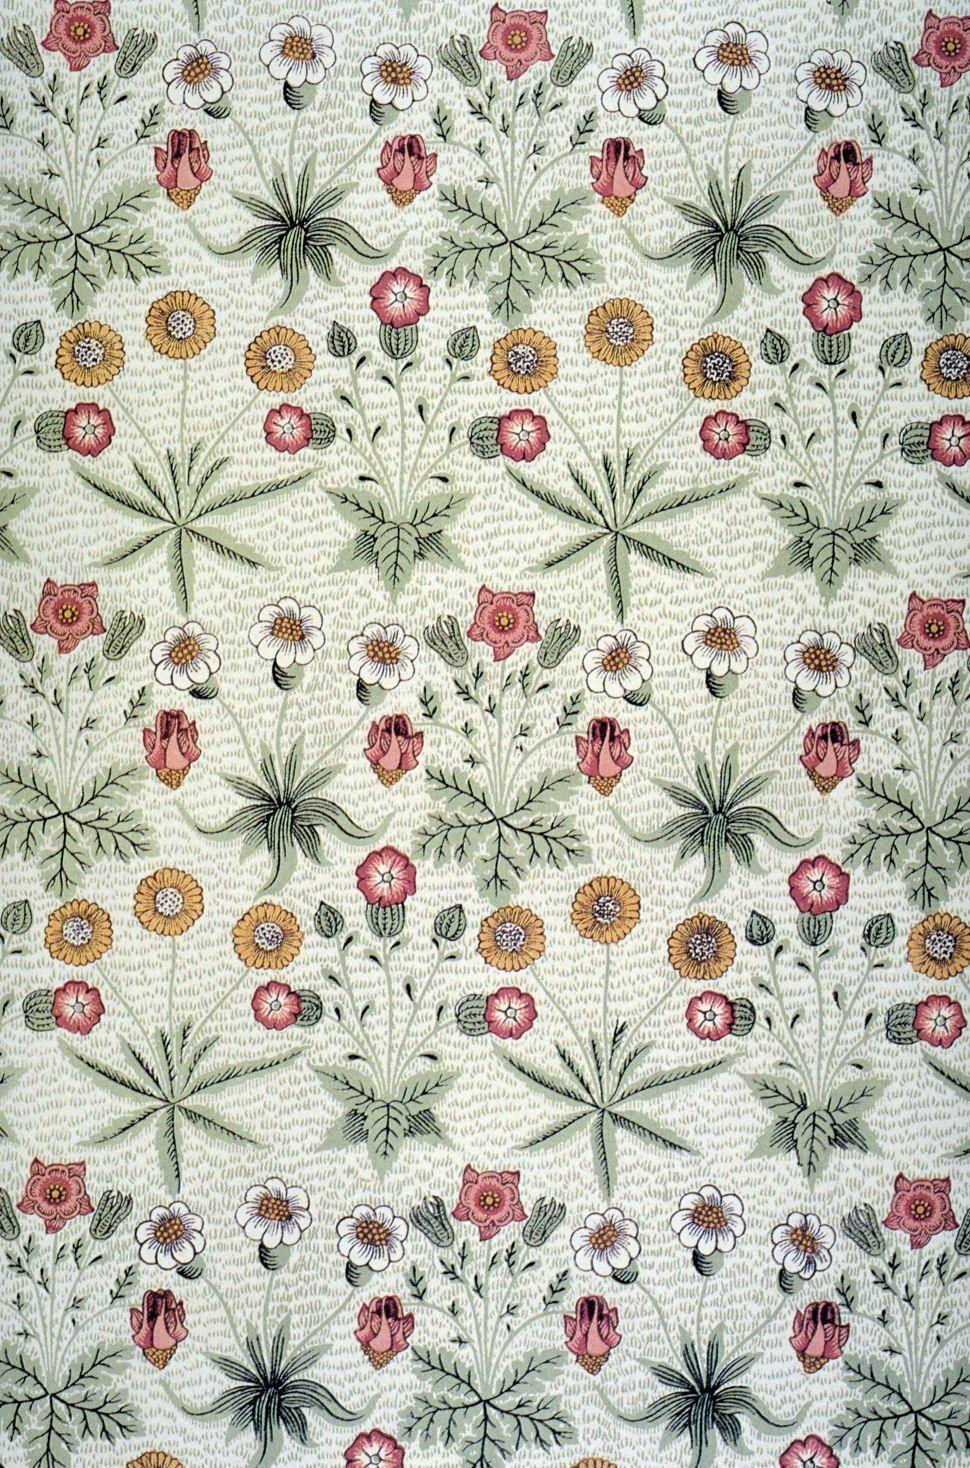 File:Morris Daisy wallpapers 1864.jpg